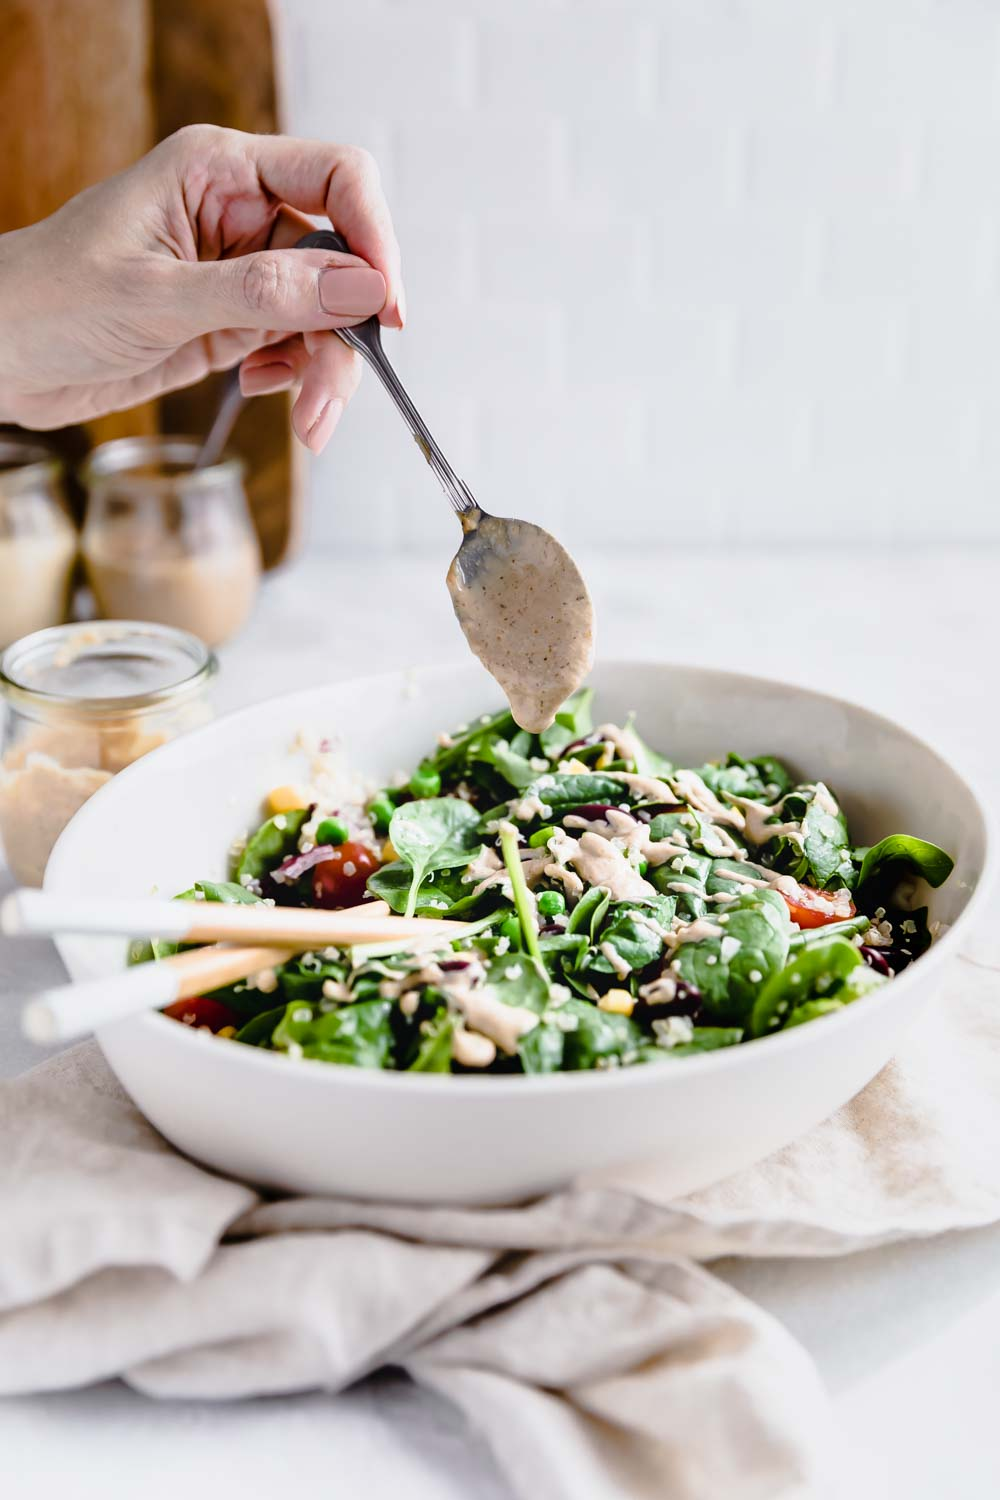 Quinoa salad in an oval bowl with chopstick on a lightbrown napkin and a light backdrop and a hand pouring a dressing in the salad with a teaspoon.